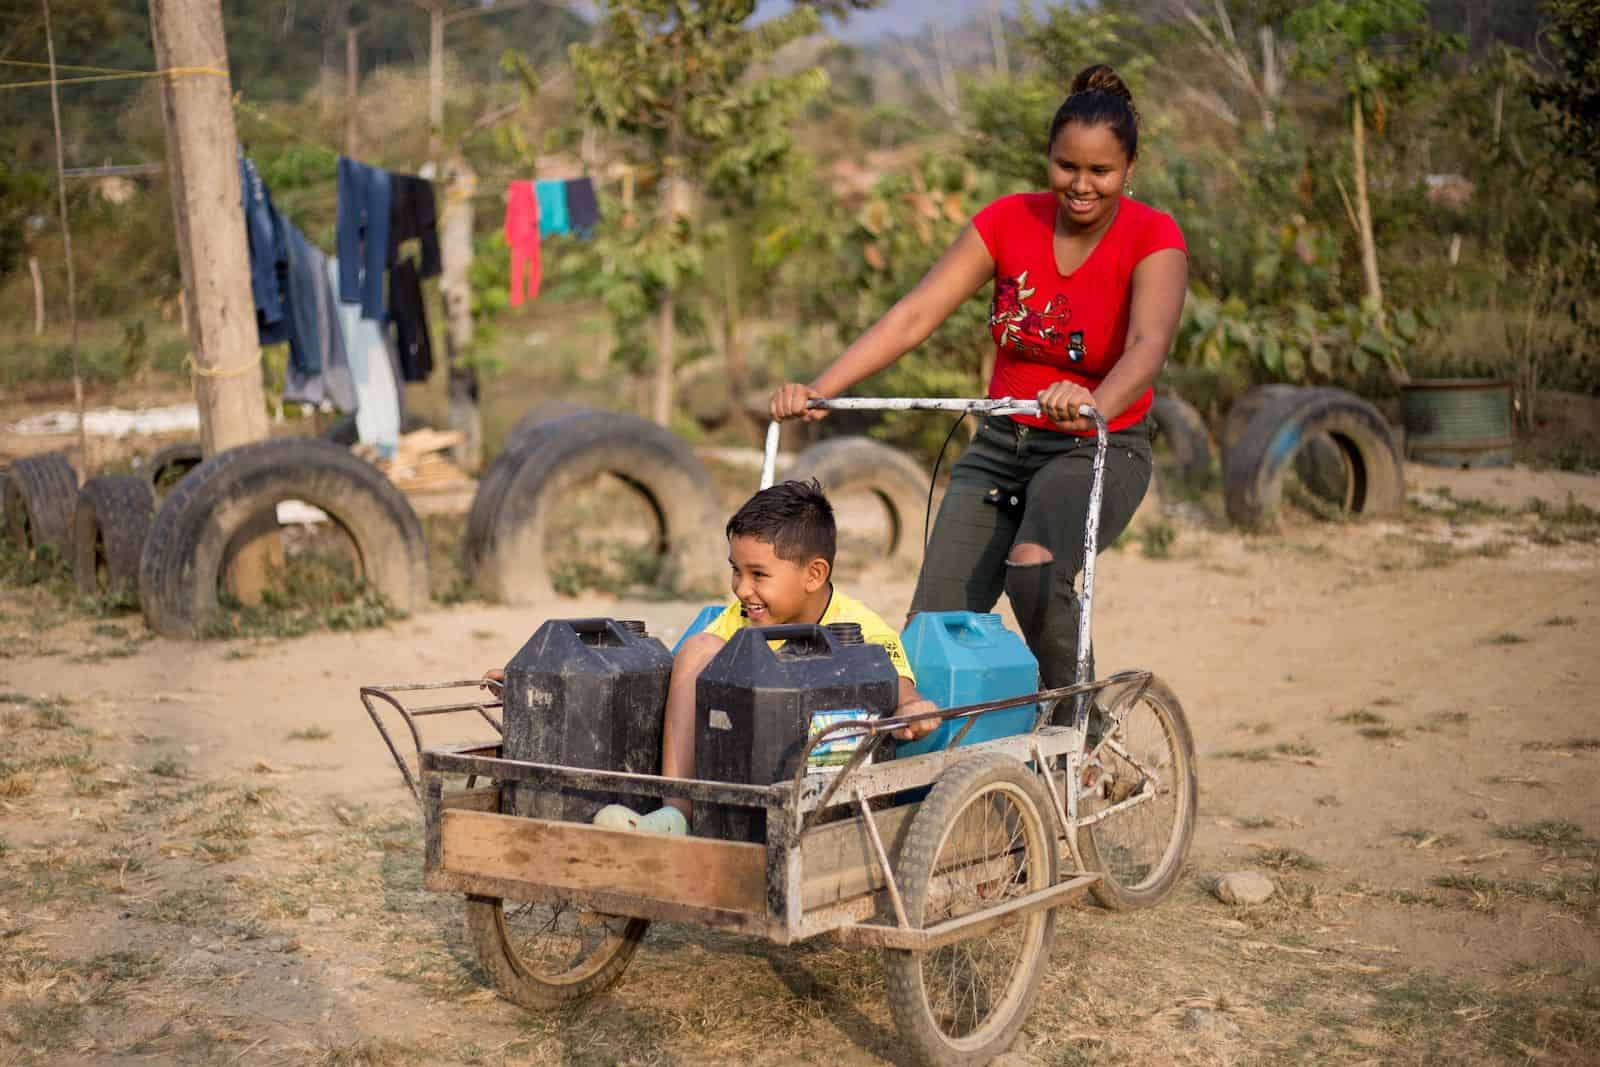 A boy rides in a tricycle cart holding water jugs, as a woman pedals.